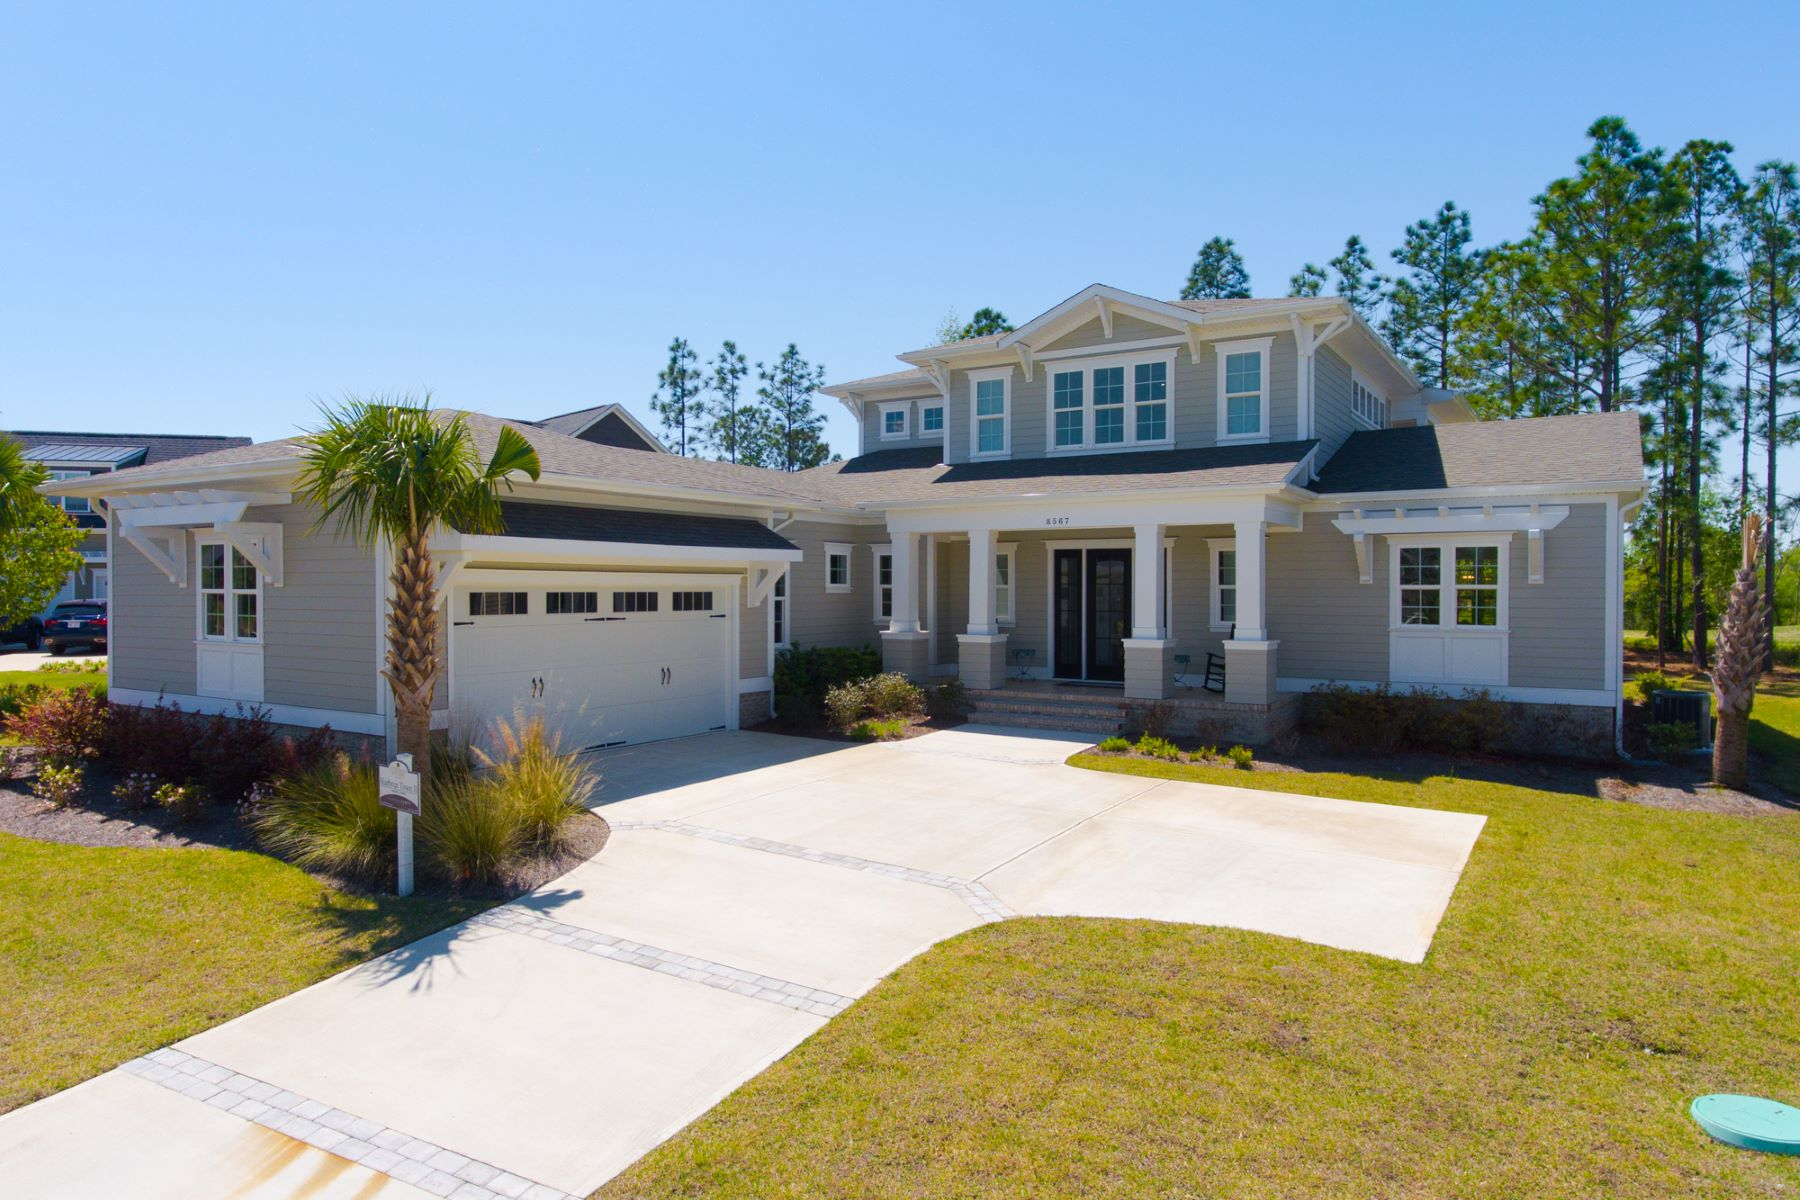 Single Family Homes for Active at Award Winning Home on 10th Fairway 8567 Robbins Walker Place Leland, North Carolina 28451 United States